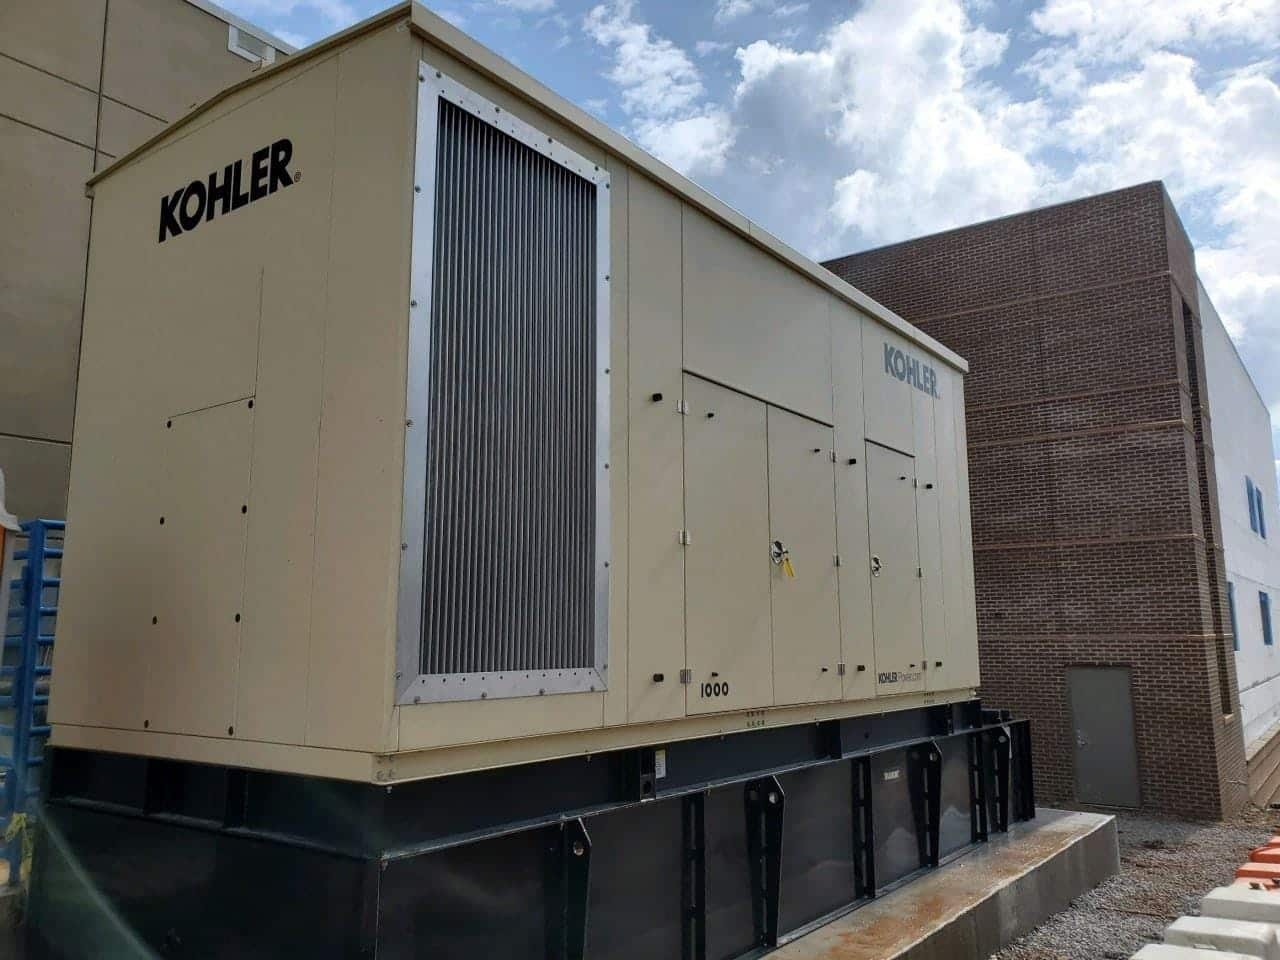 New 1000 kW Kohler KD1000 Diesel Generator – EPA Tier 2 – COMING IN!